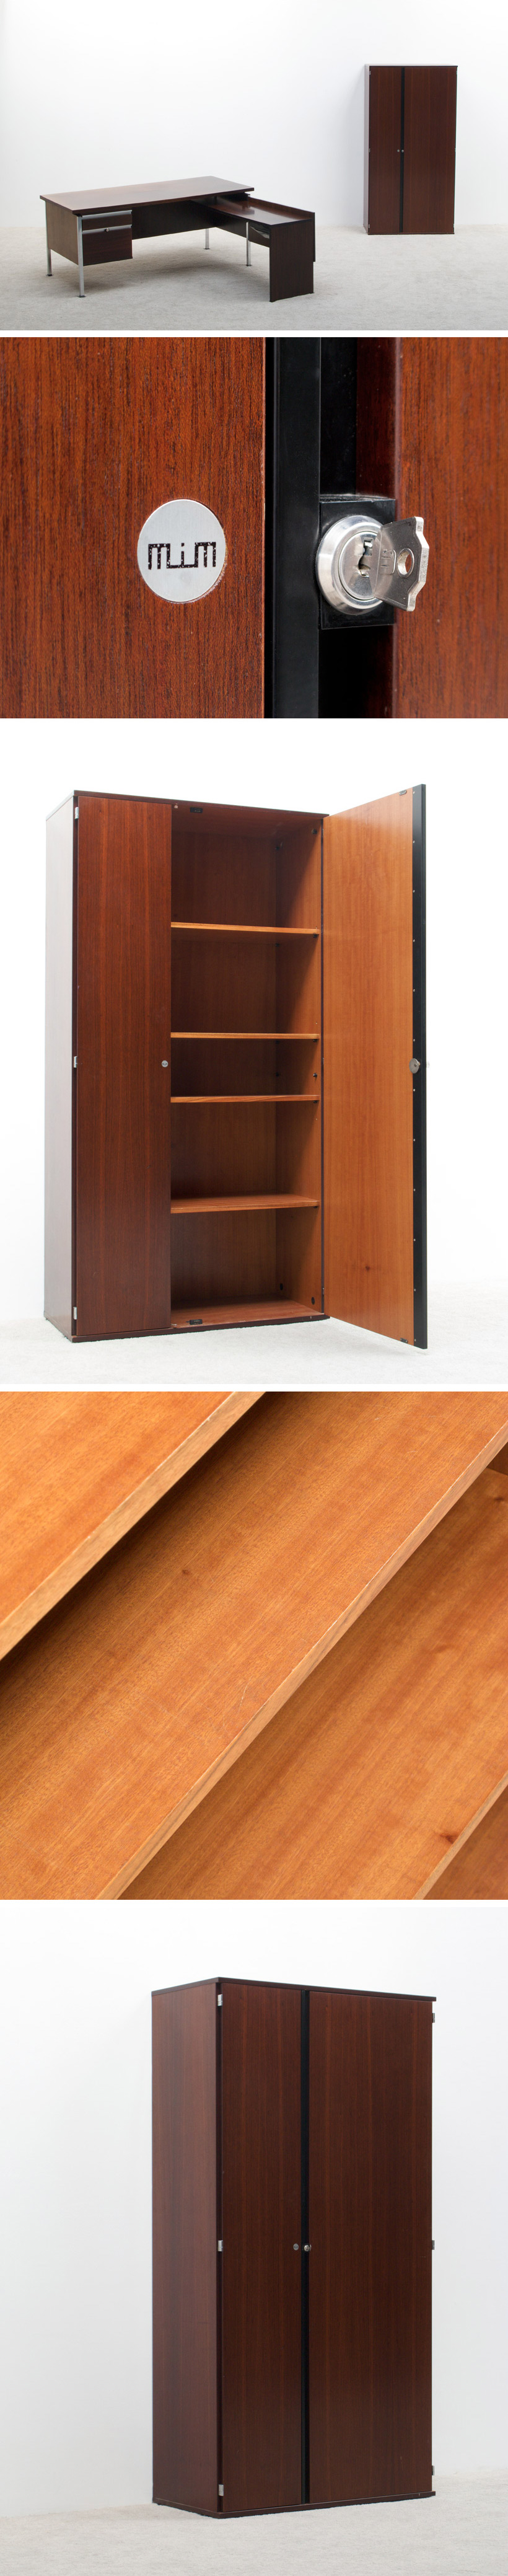 Luisa and Ico Parisi cupboard for MIM Large